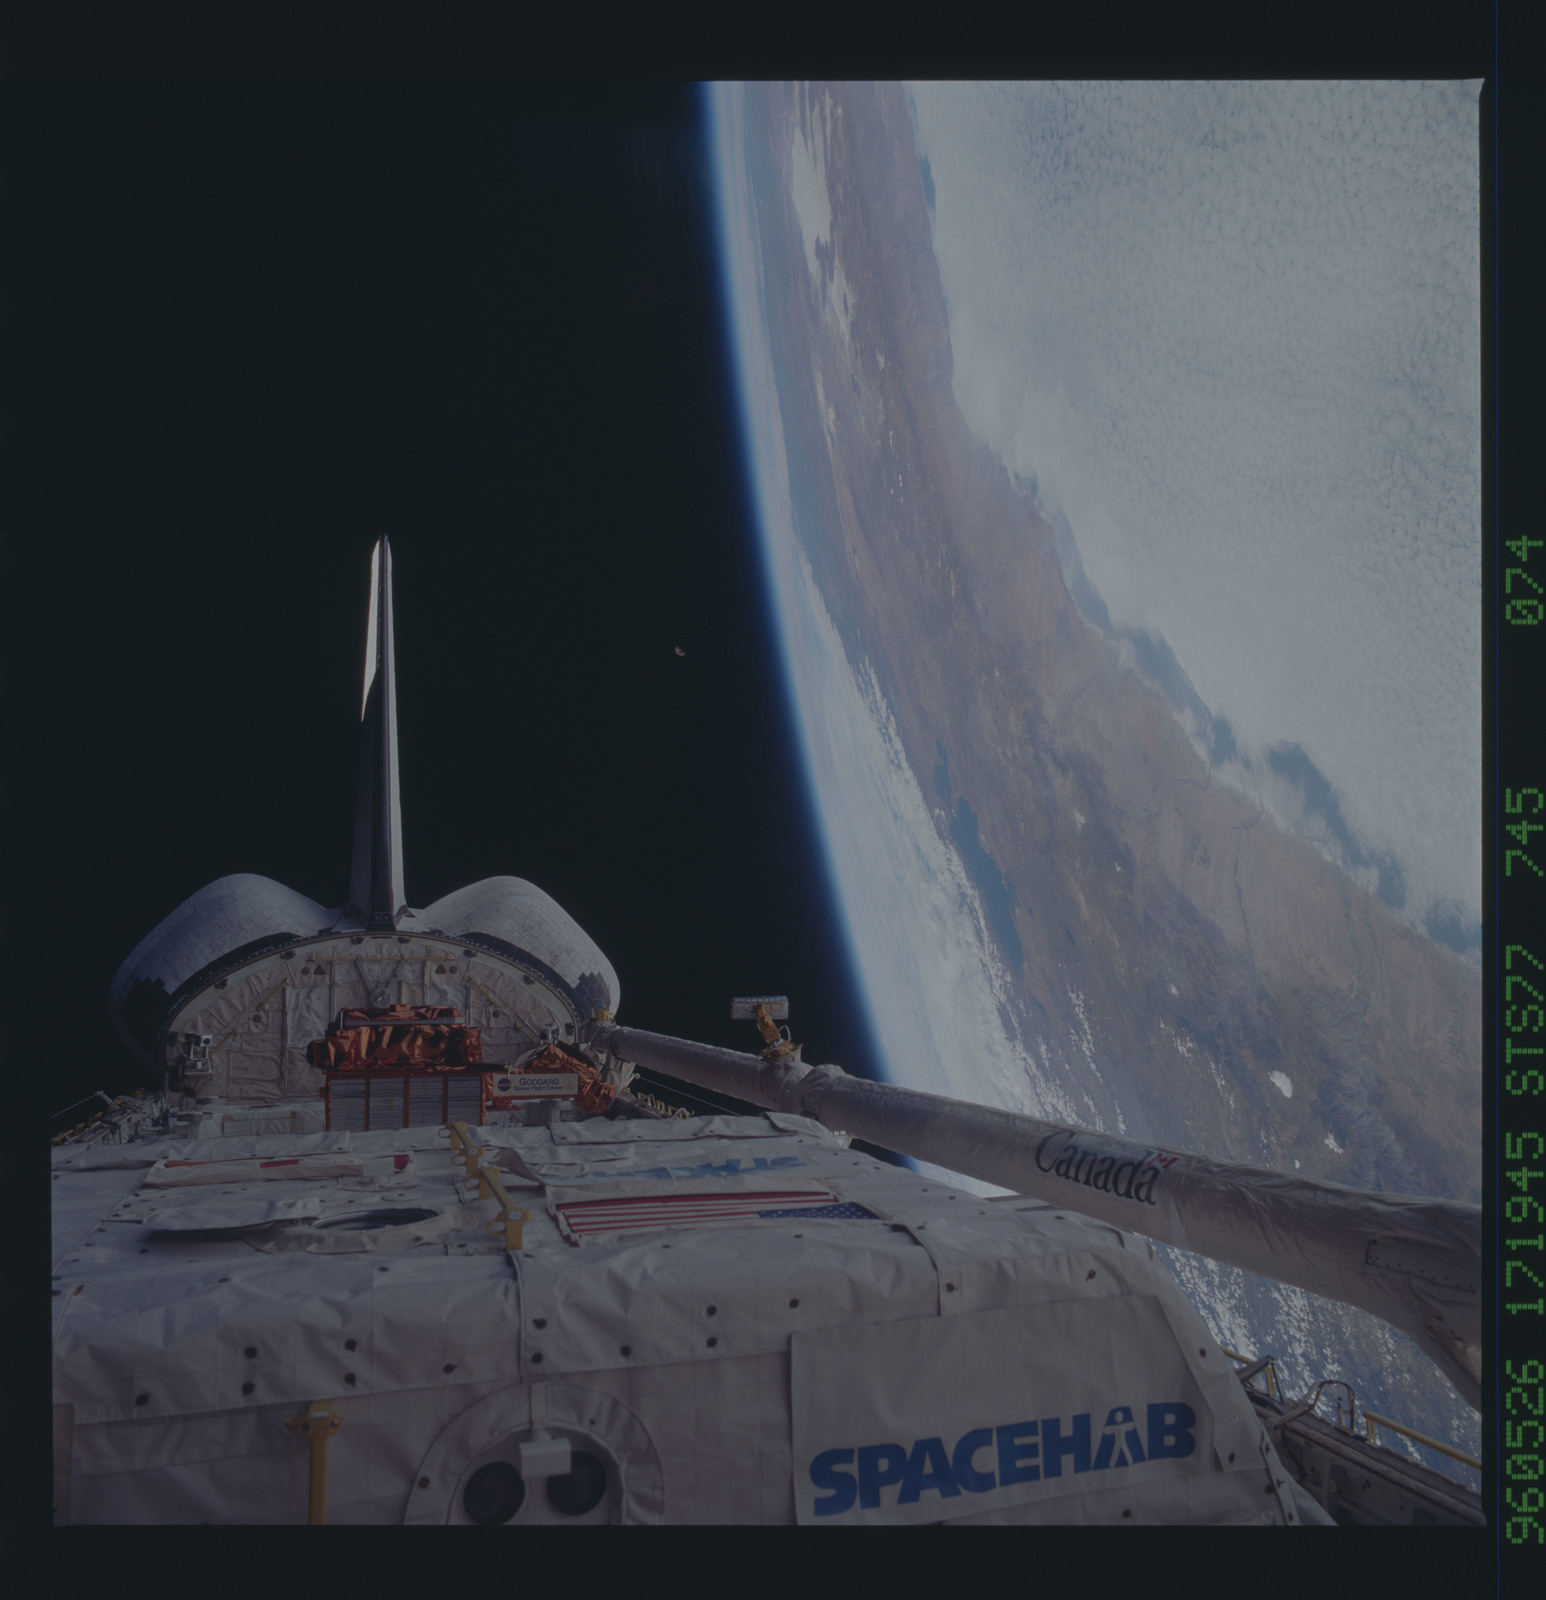 STS077-745-074 - STS-077 - View of the Endeavour's payload bay